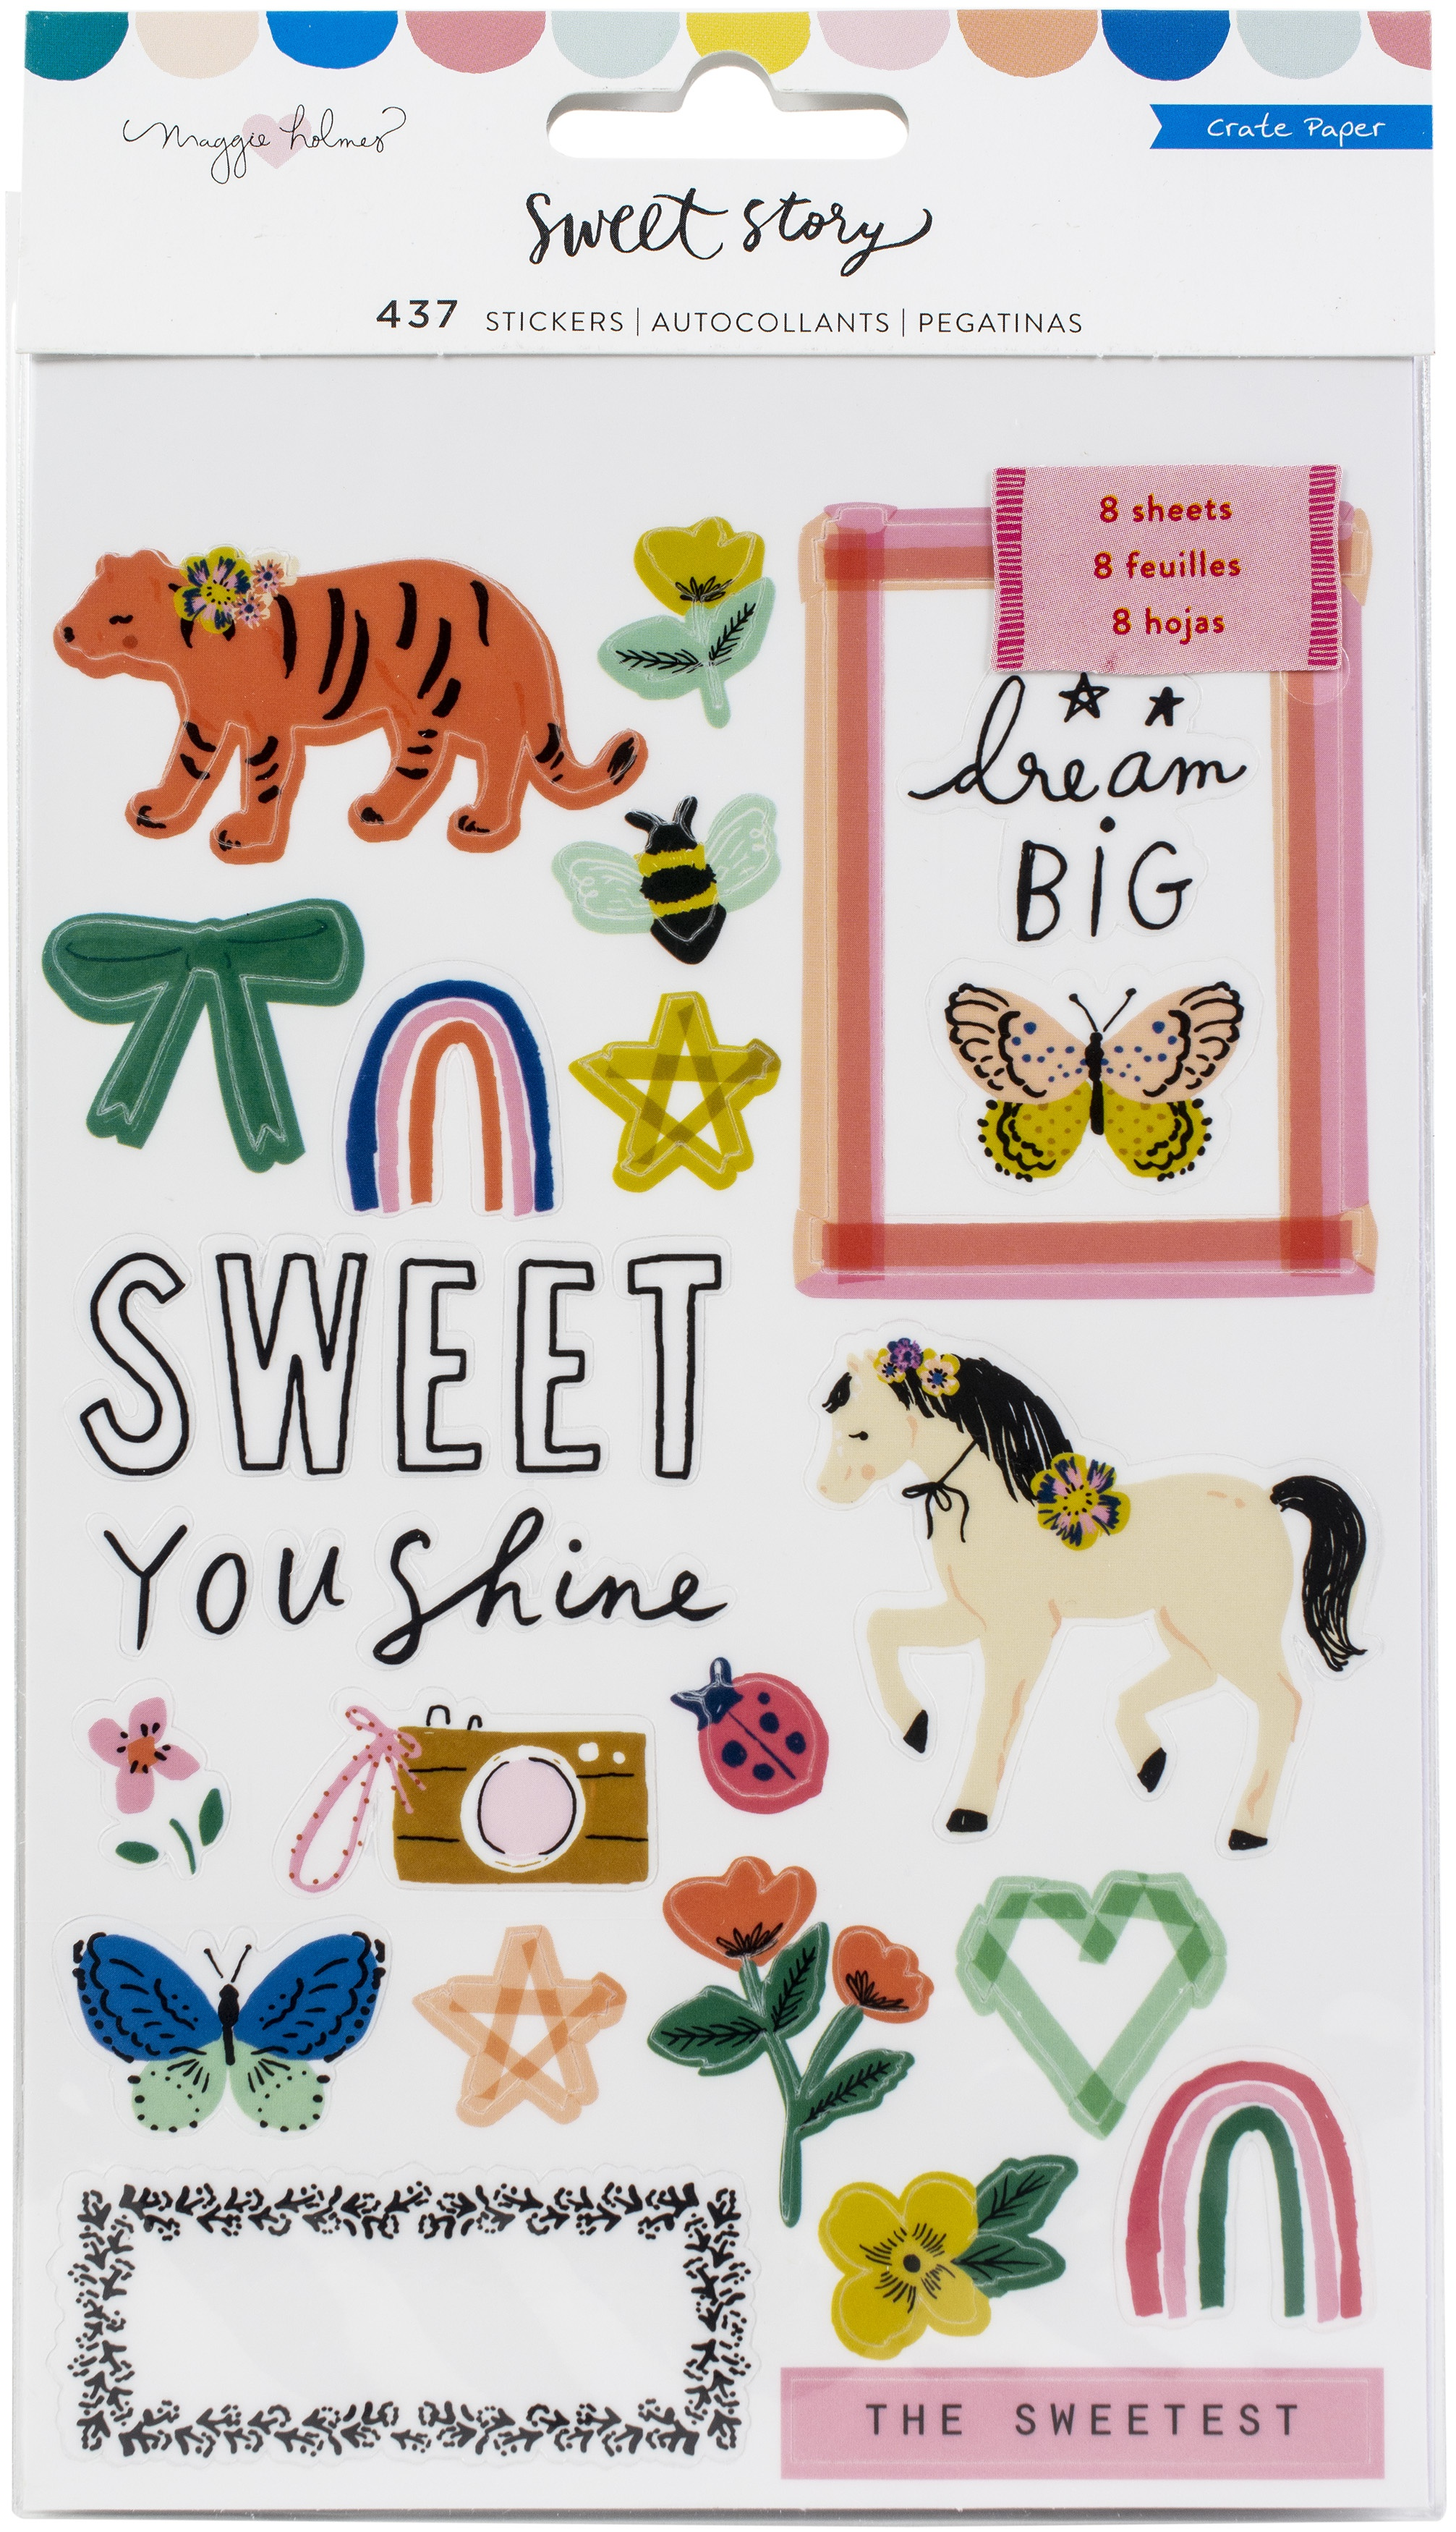 Sweet Story Stickers Book